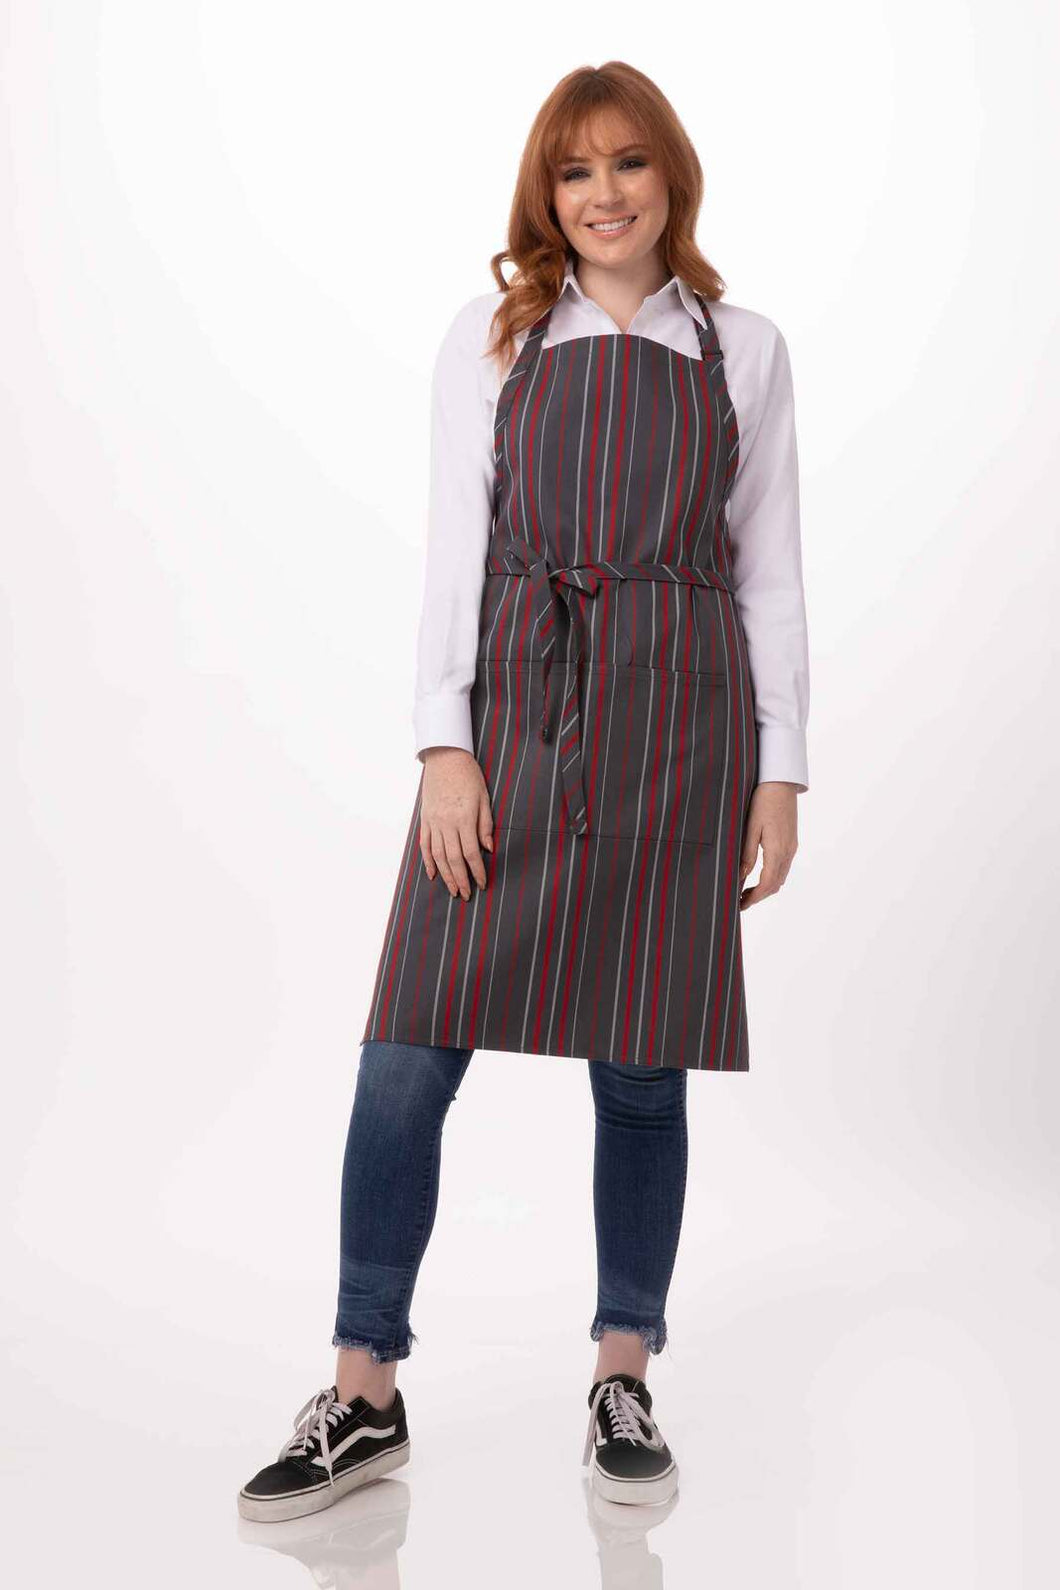 ADJUSTABLE STRIPED BIB APRON